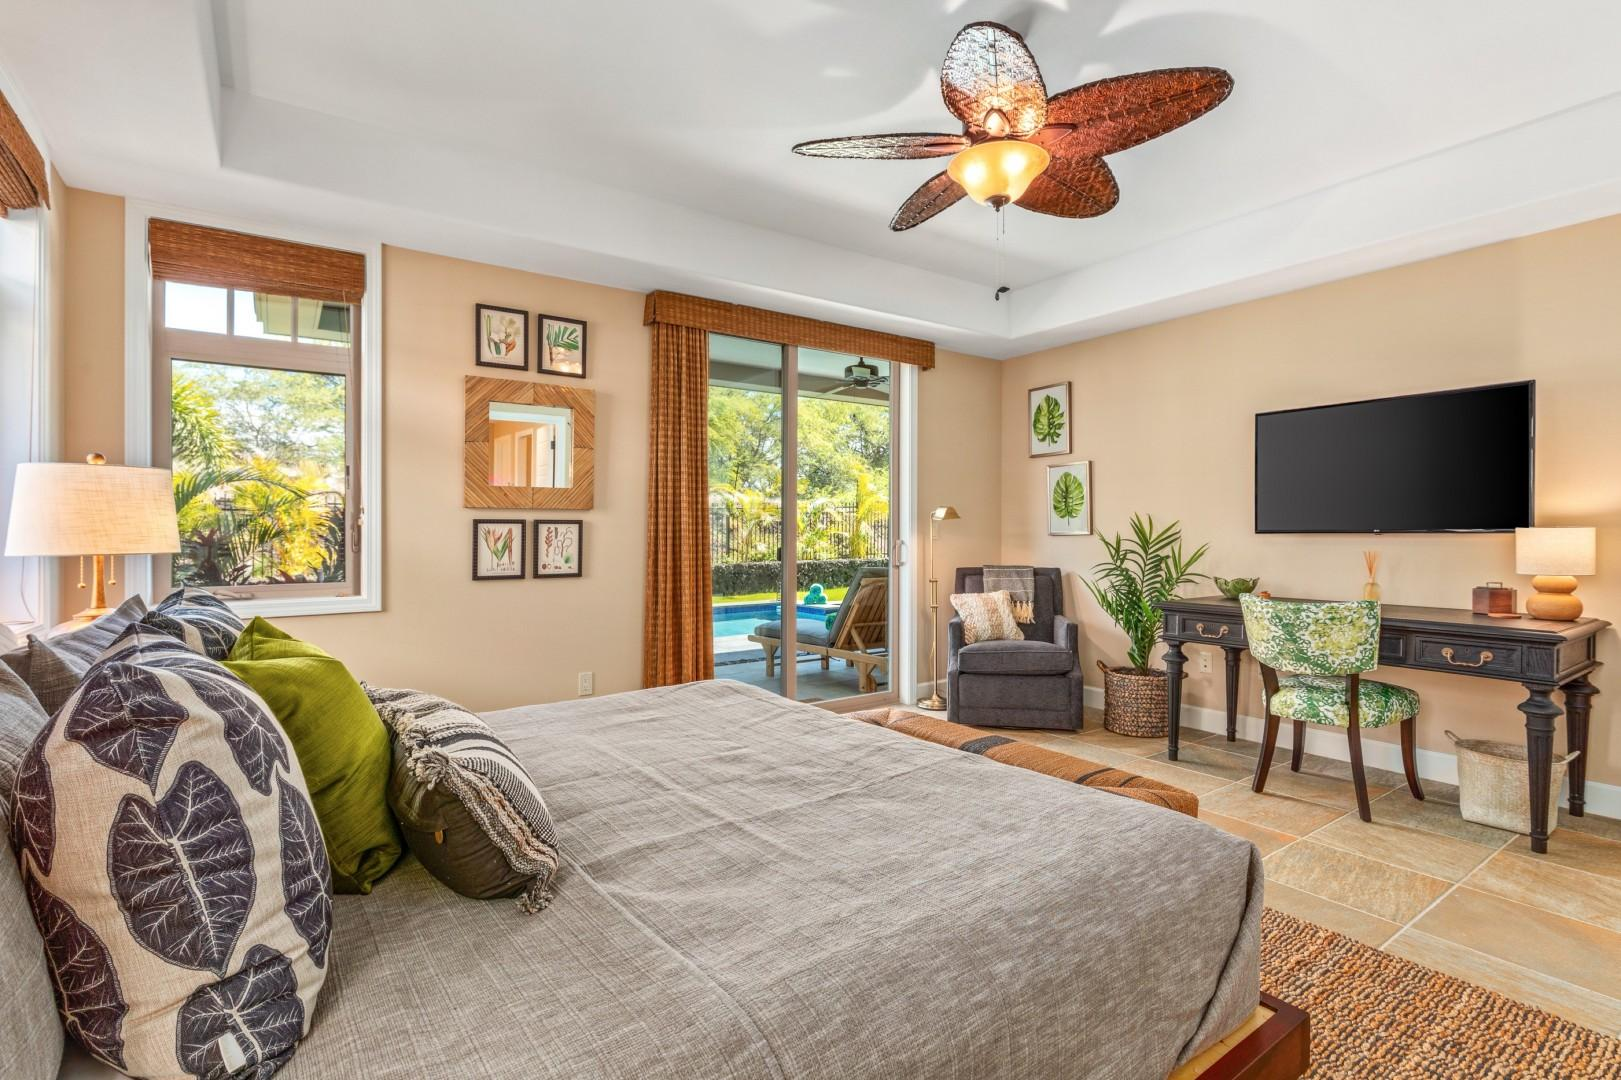 Alternate view of master bedroom highlighting spaciousness, seating area, and natural light.